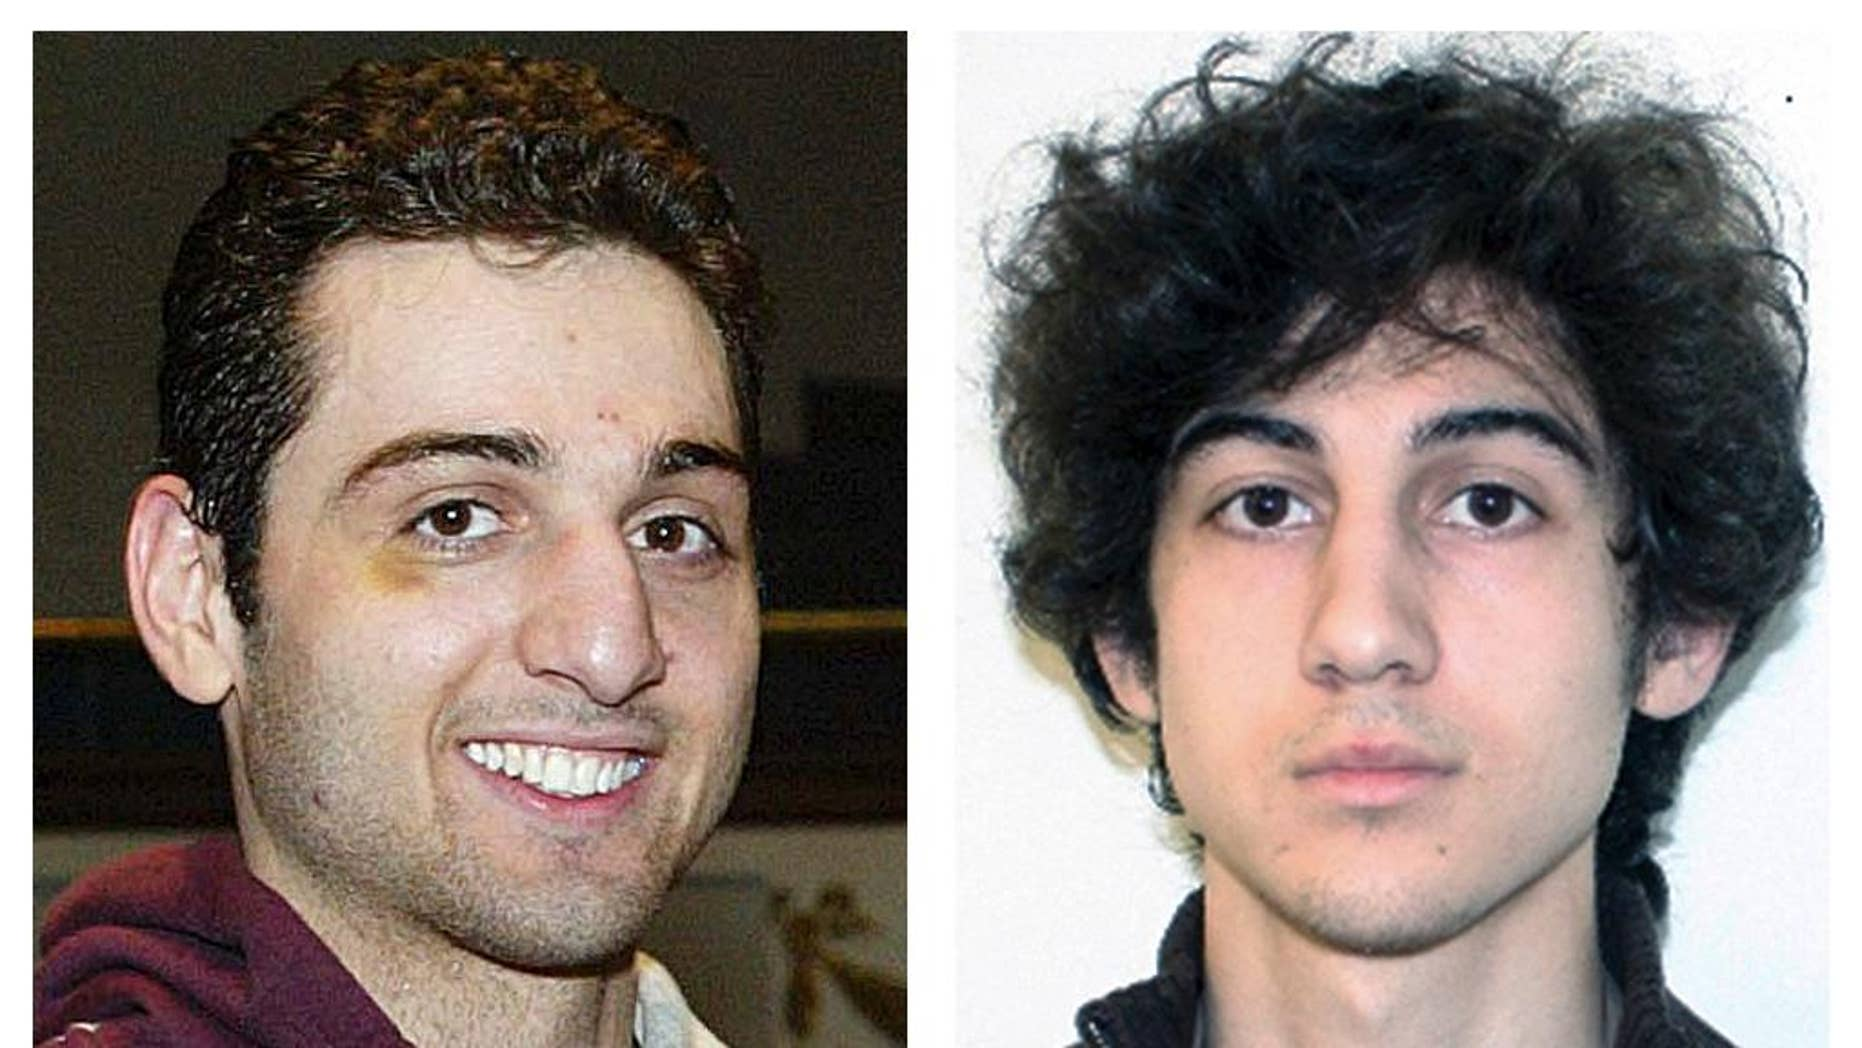 FILE - This combination of file photos shows brothers Tamerlan, left, and Dzhokhar Tsarnaev, suspects in the Boston Marathon bombings on April 15, 2013. A Friday, Oct. 10, 2014 filing by the defense says a prosecution witness against Dzhokhar Tsarnaev is prepared to testify that Tsarnaev knew his older brother Tamerlan was involved in a 2011 triple slaying, according to a filing by attorneys for the surviving brother. Tsarnaev has pleaded not guilty in the 2013 bombings that killed three people and injured about 260 others. (AP Photos/Lowell Sun and FBI, File)